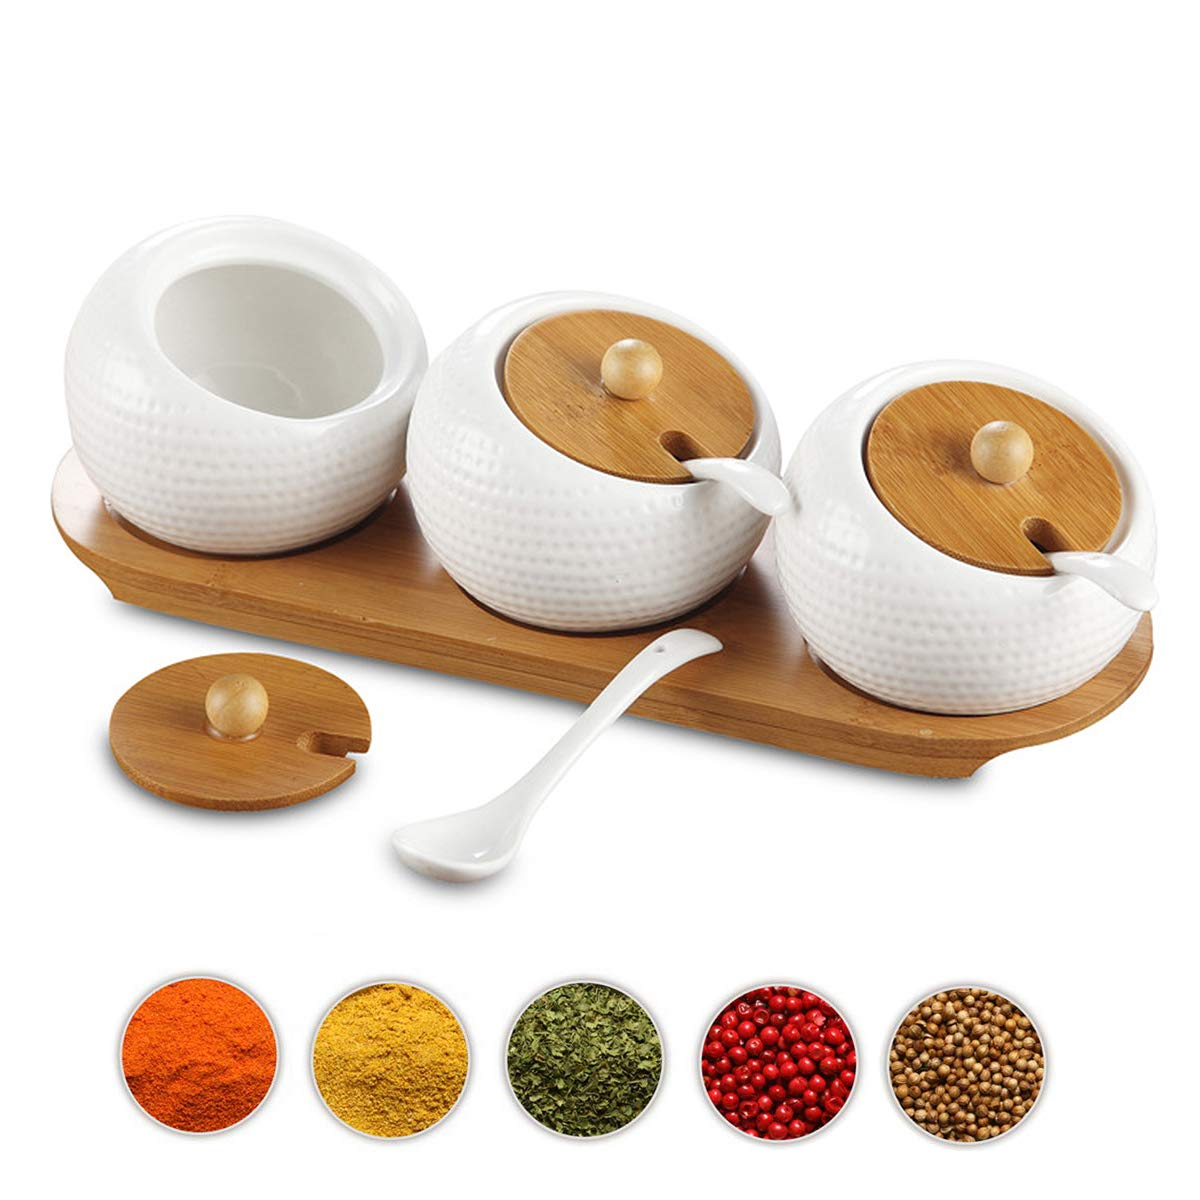 5.8 OZ Vencer Set of 3 Ceramic Sugar Bowls with Bamboo Lids and Spoons,Wooden Tray Condiment Pots for Your Kitchen 170 ML